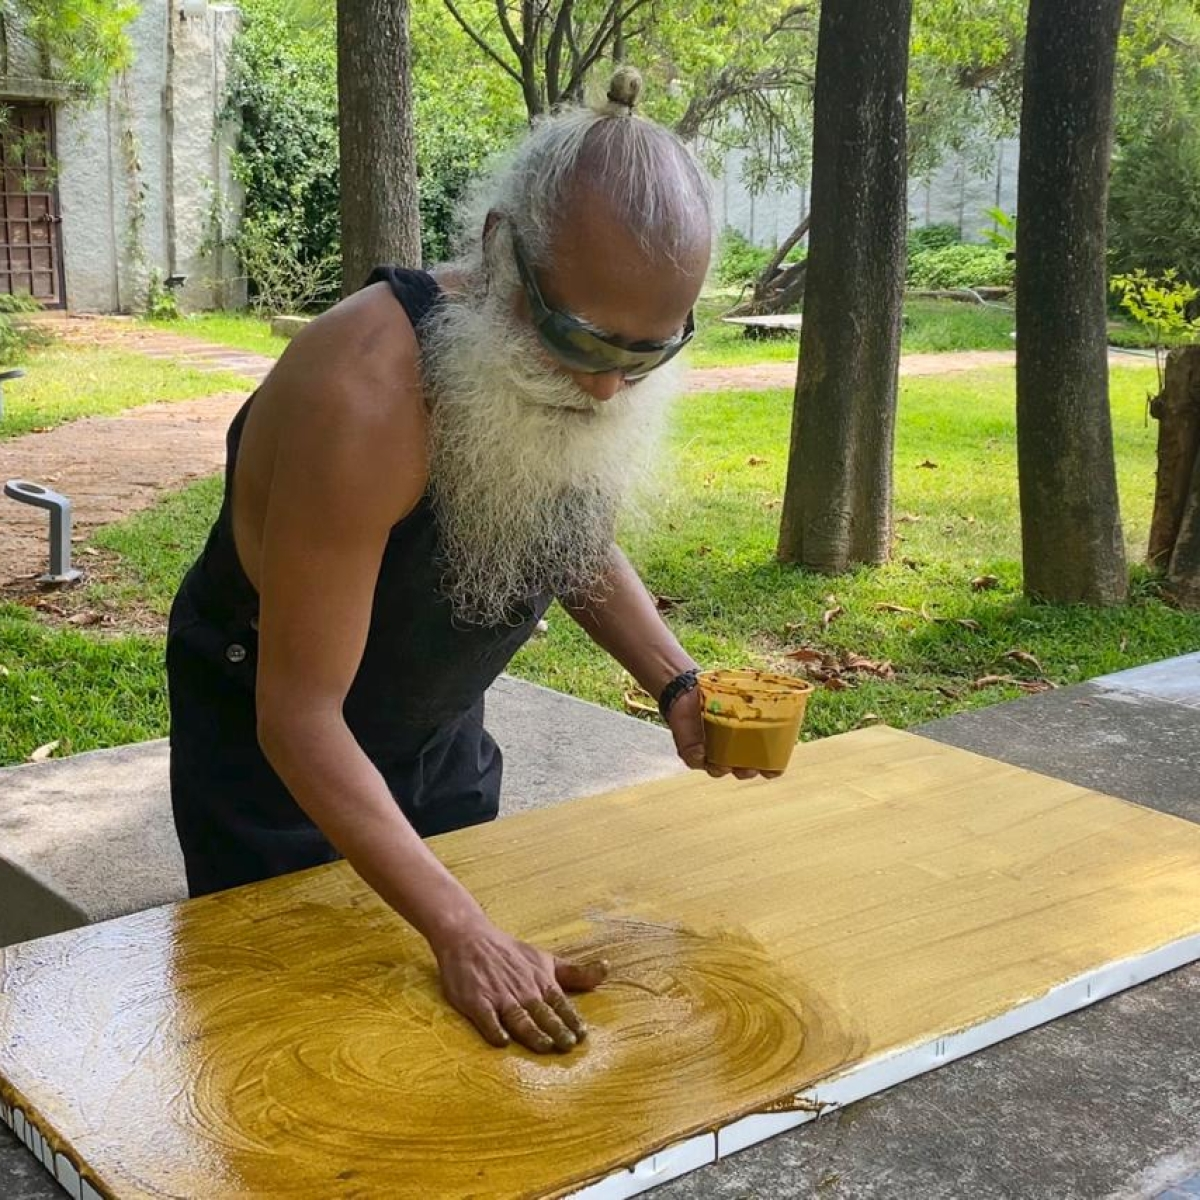 Sadhguru's 'Bhairava' Painting Up For Auction To Raise Funds For Corona Relief